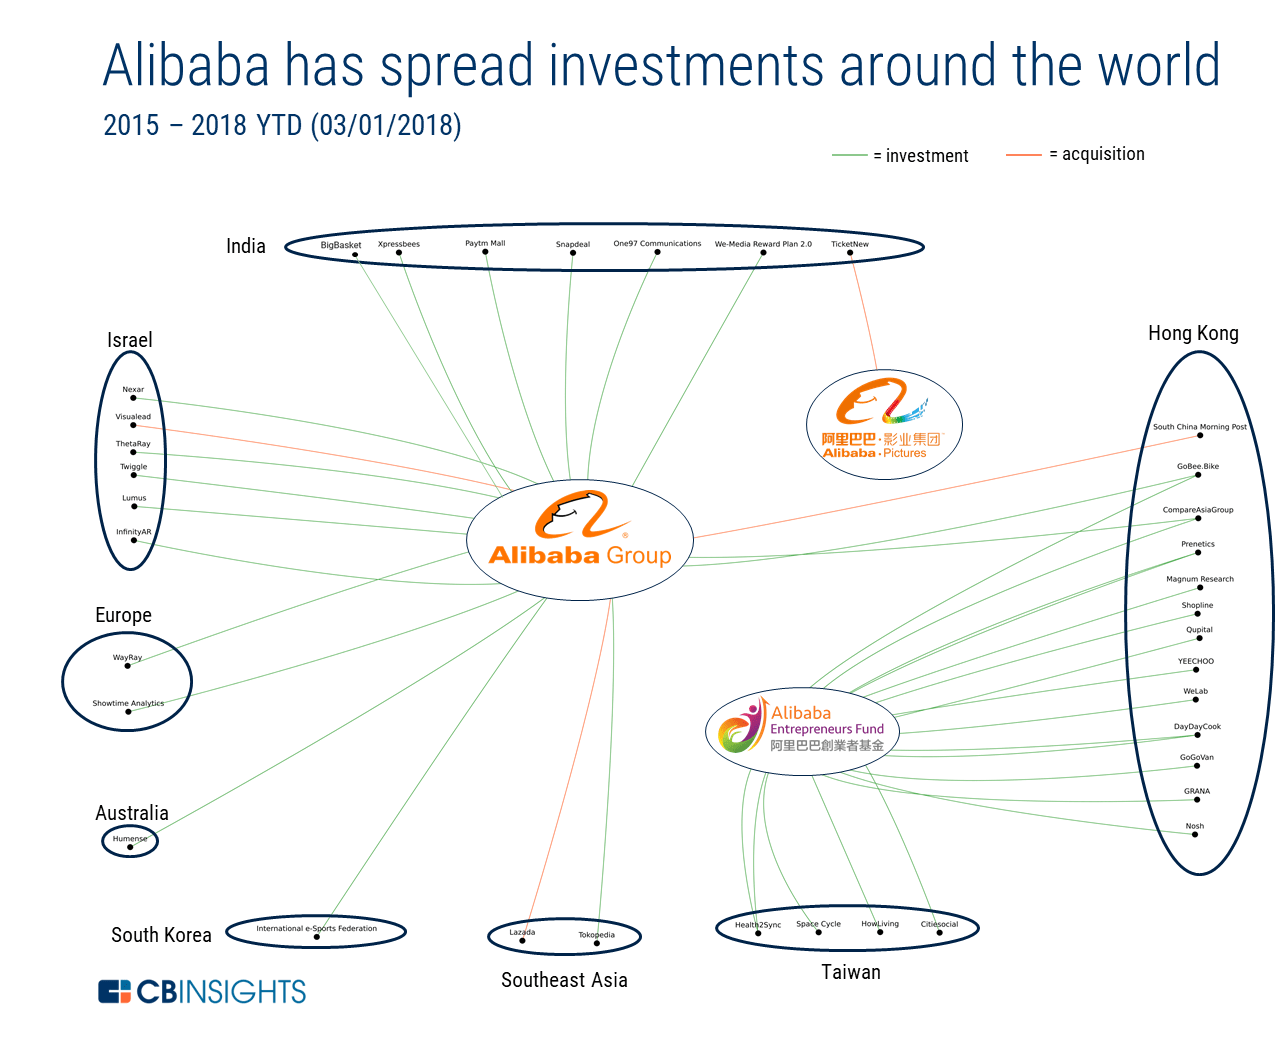 Amazon Vs Alibaba How The E Commerce Giants Stack Up In The Fight To Go Global However, antitrust hassles and higher costs remain concerns. amazon vs alibaba how the e commerce